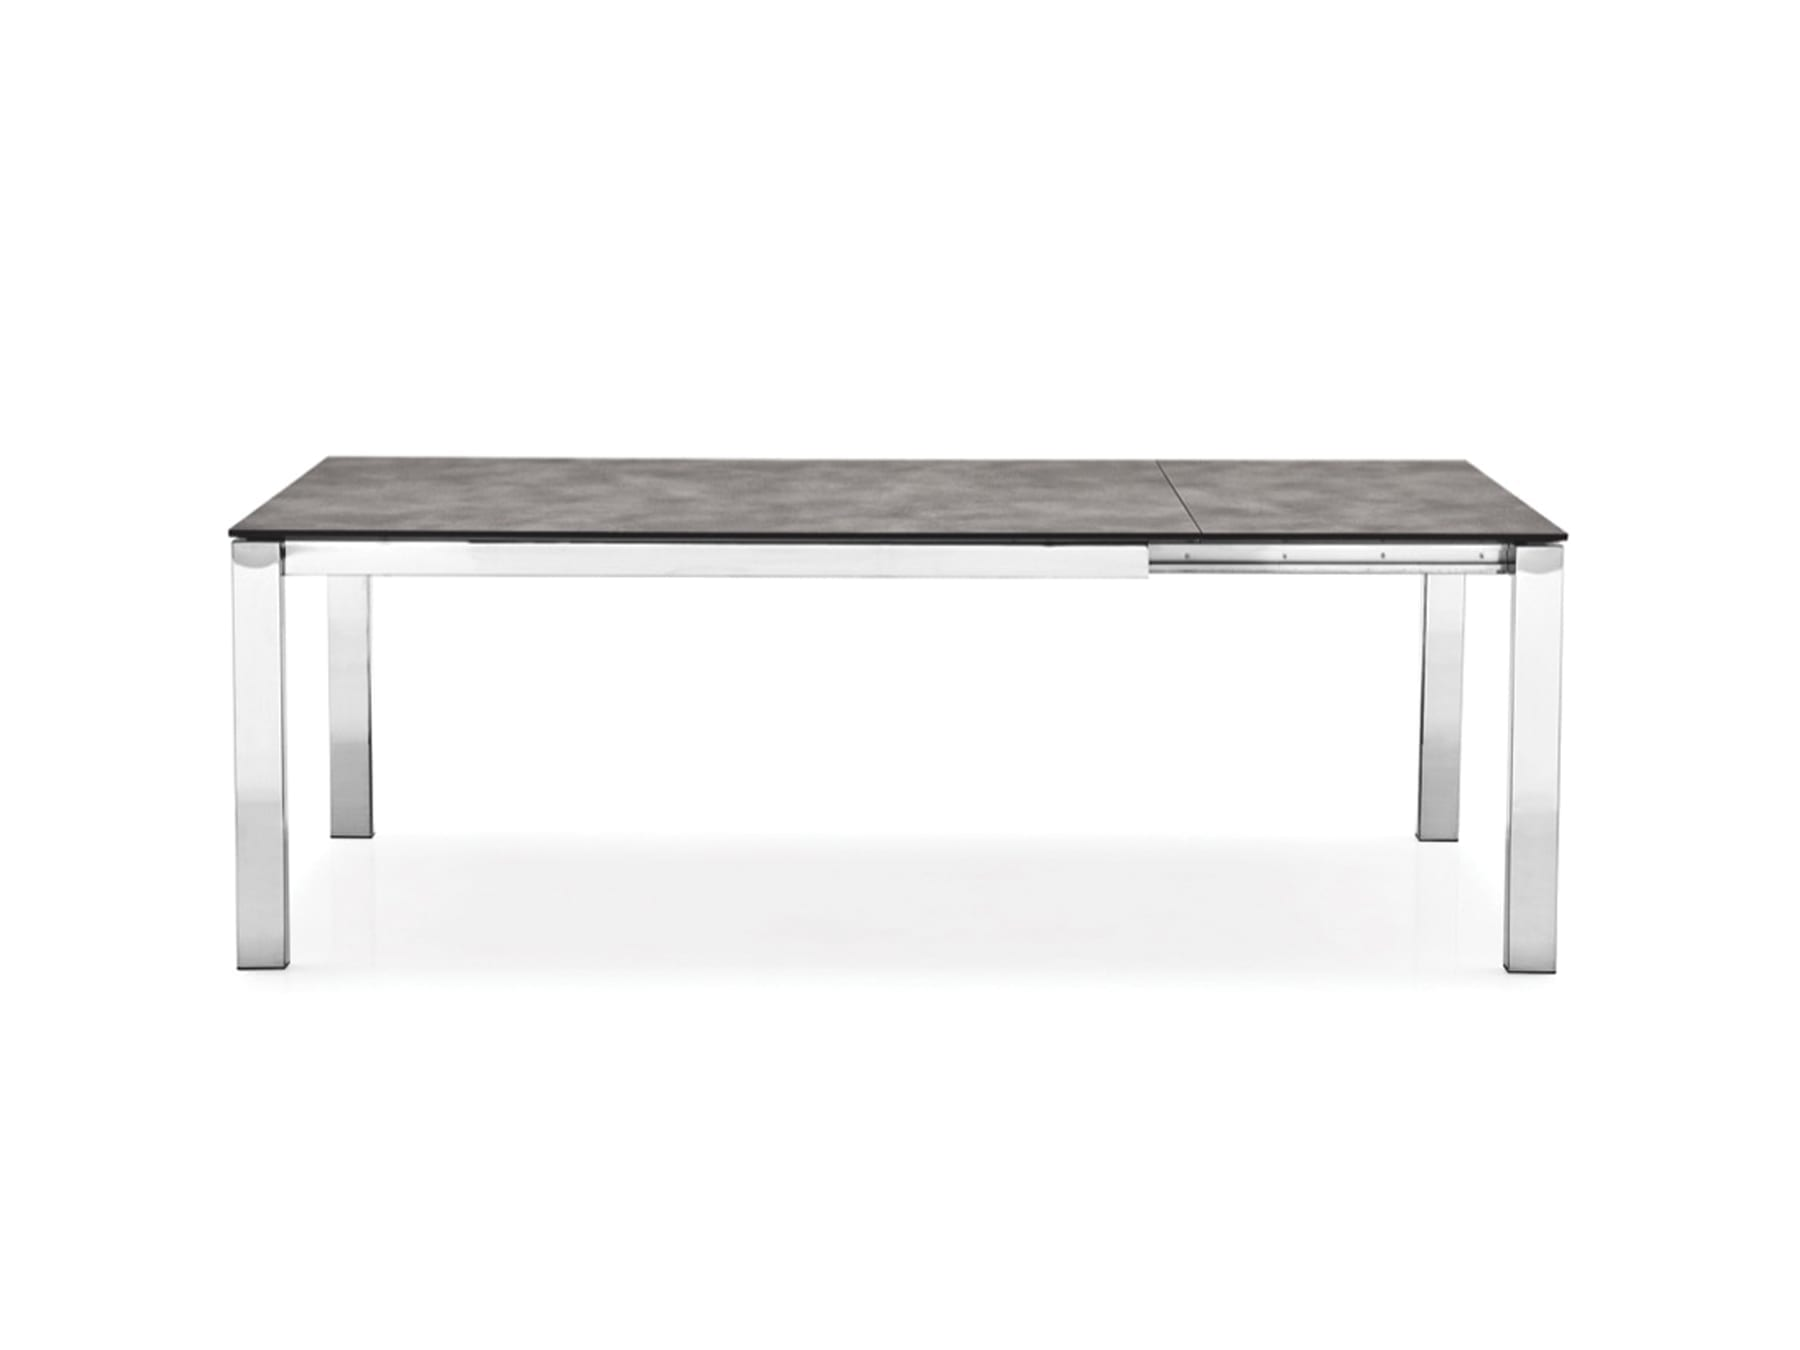 Calligaris baron extension dining table mckenzie willis for Calligaris baron table